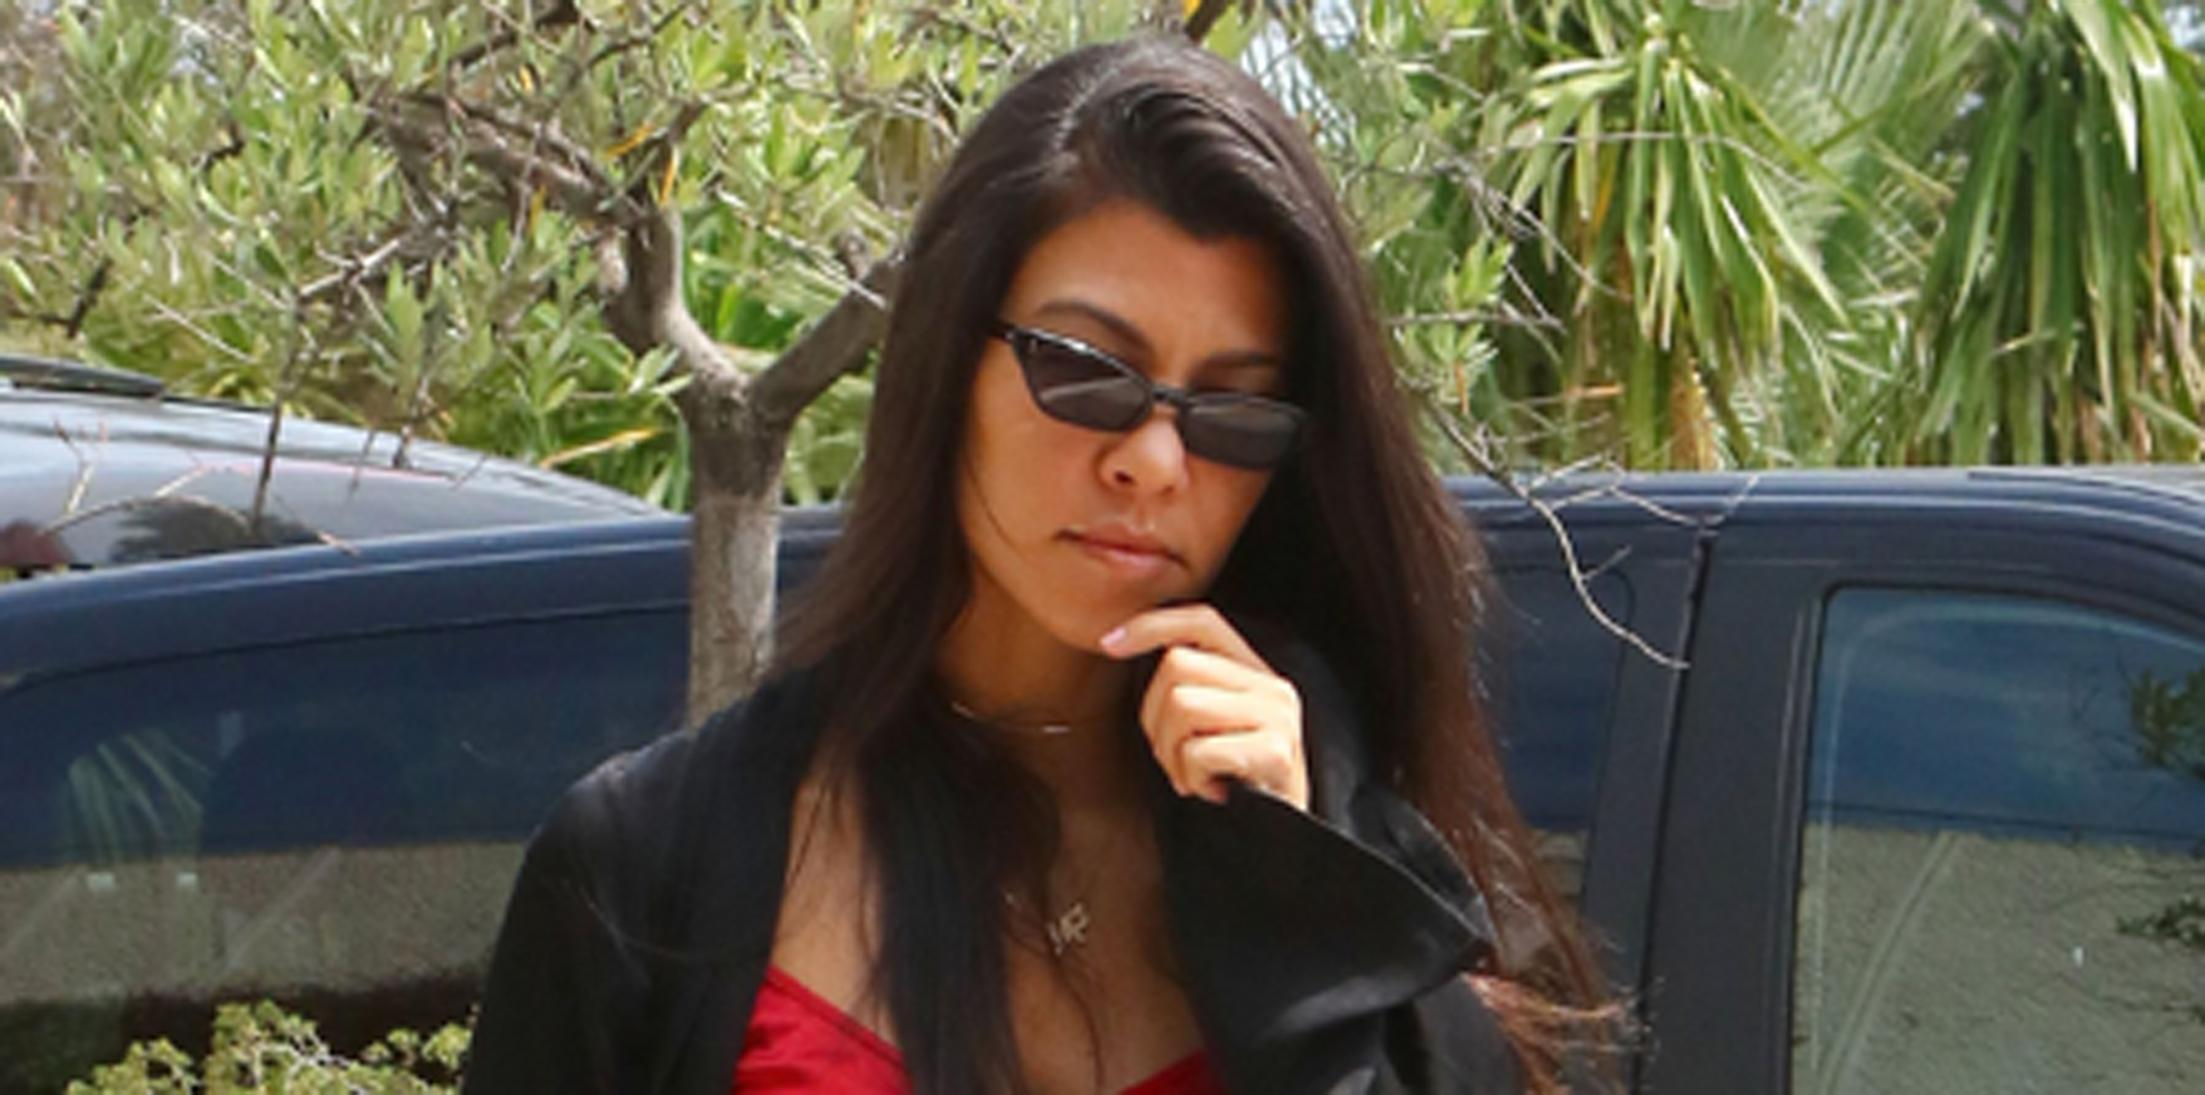 Kourtney Kardashian and Kendall Jenner say goodbye to Cannes with their boys Younes Bendjima and A$AP Rocky